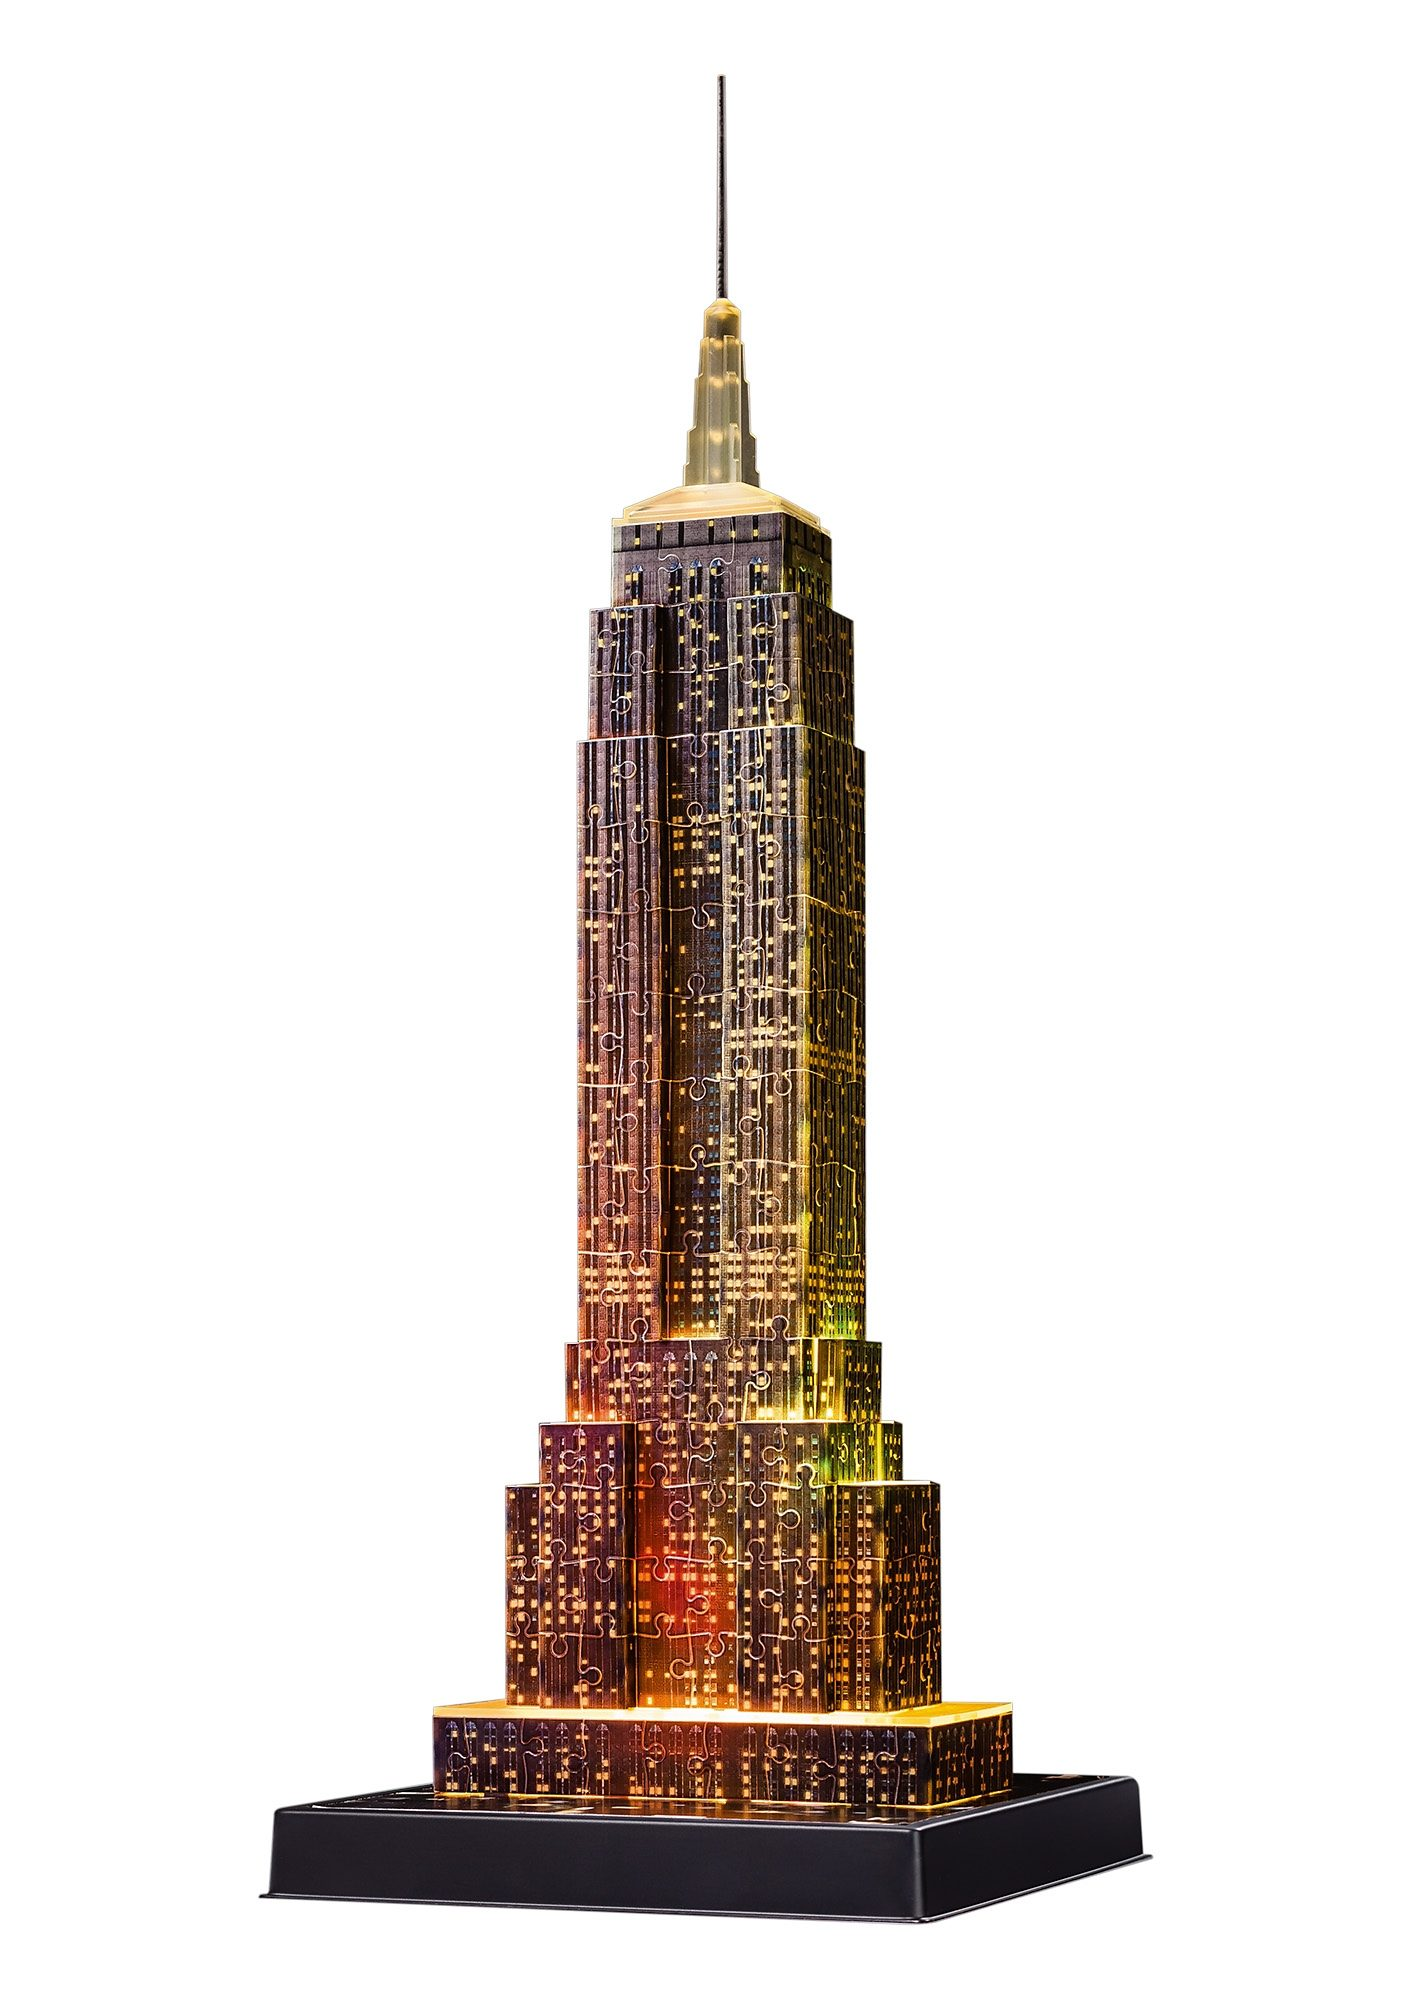 Ravensburger 3D Puzzle 216 Teile, »Empire State Building - Night Edition«